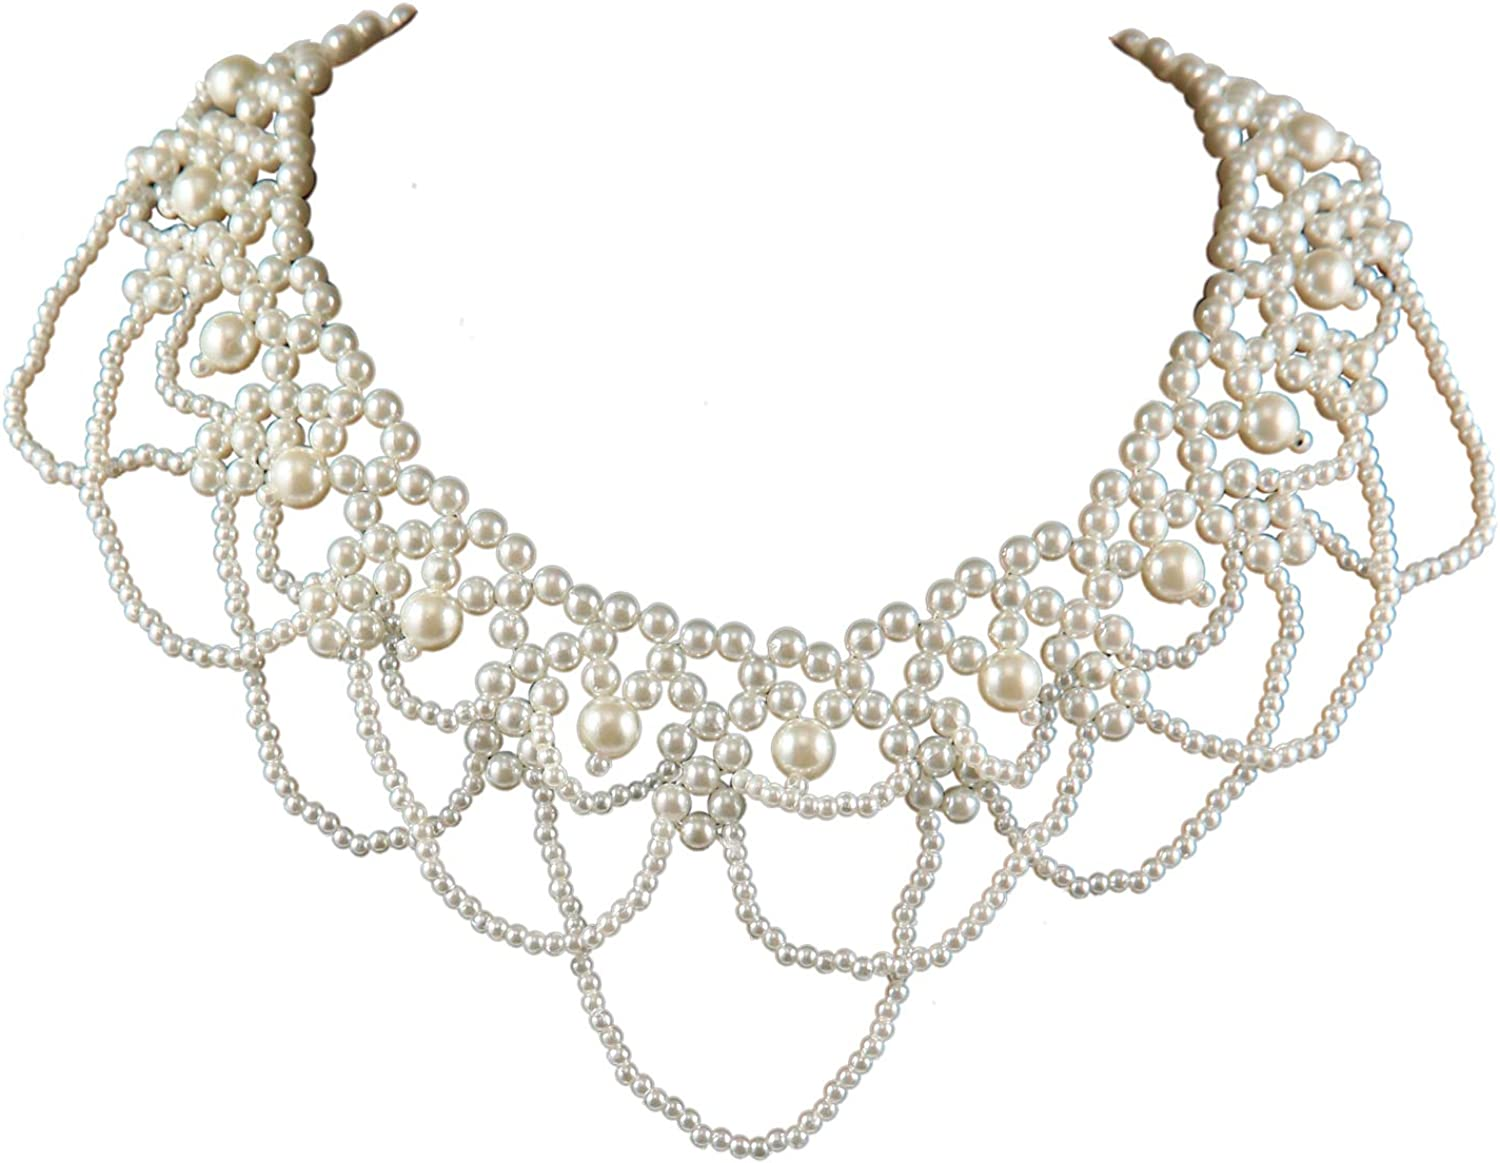 Pearl Beaded False Collar Detachable Decorative Gown Choker Necklace for Women Girl Jewelry Gifts Luxury Costume Cosplay Party Favors Neckwear